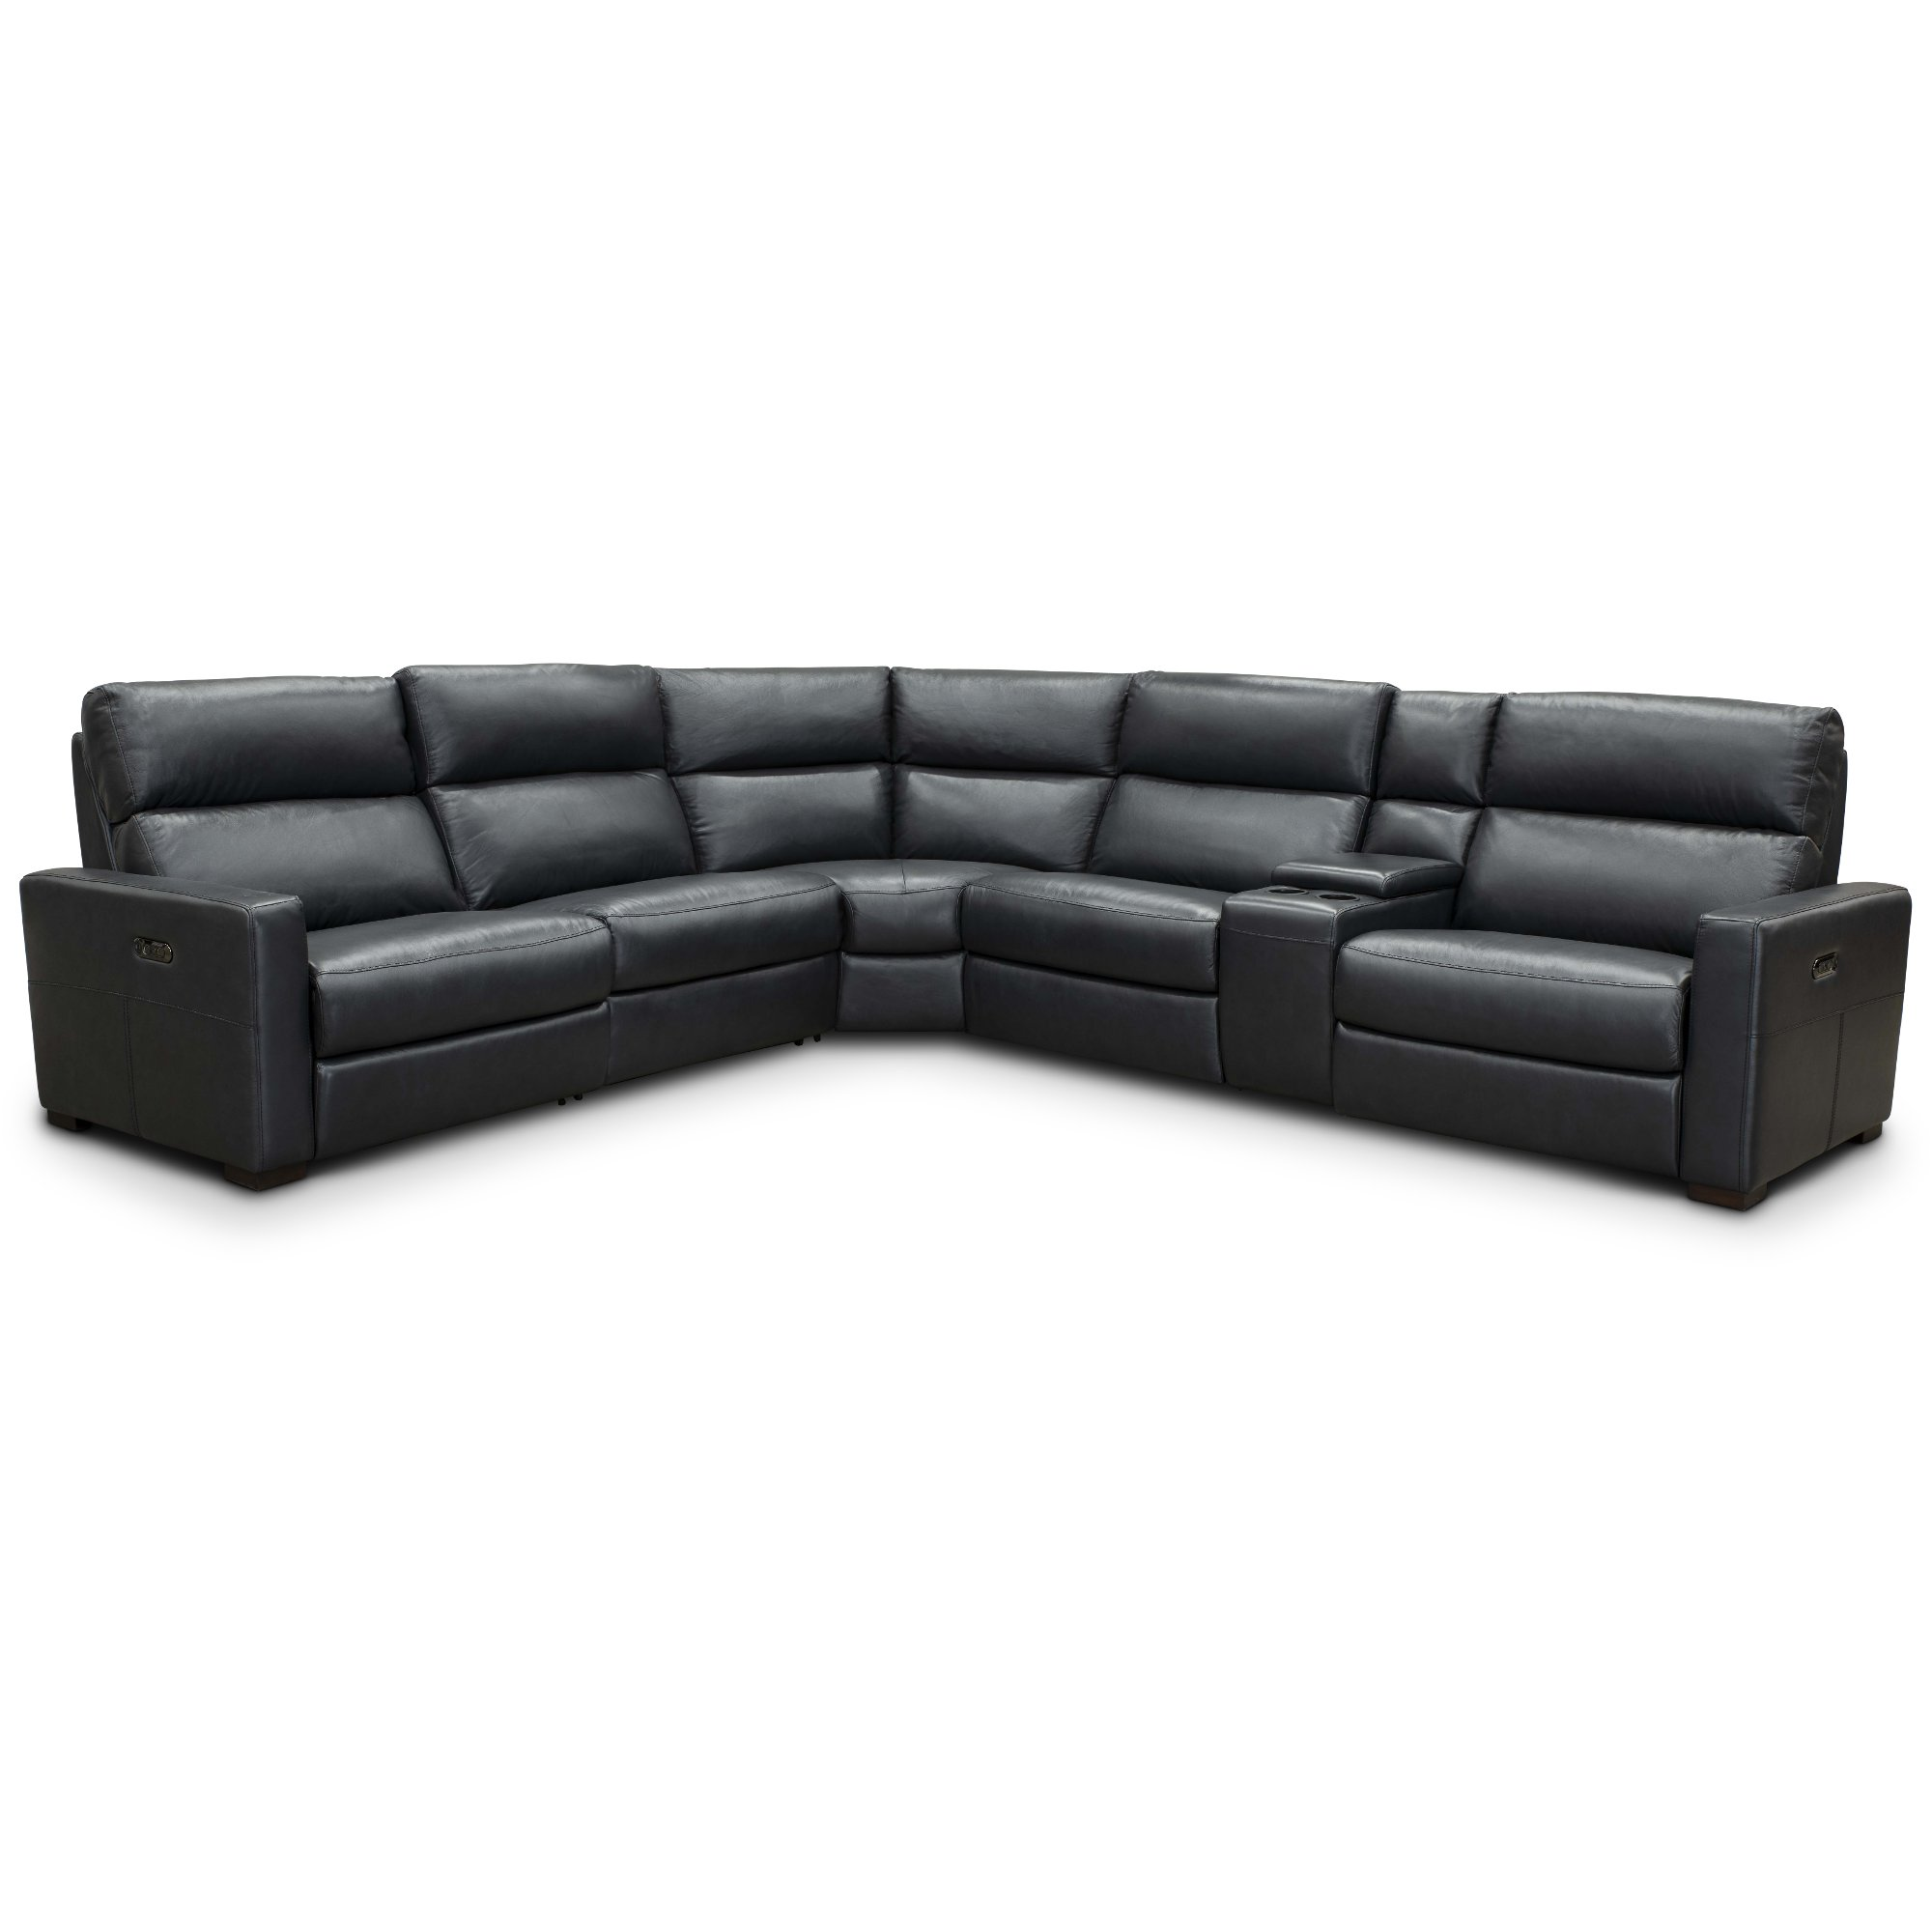 Navy Blue Leather-Match Power Reclining Sectional Sofa - Angler